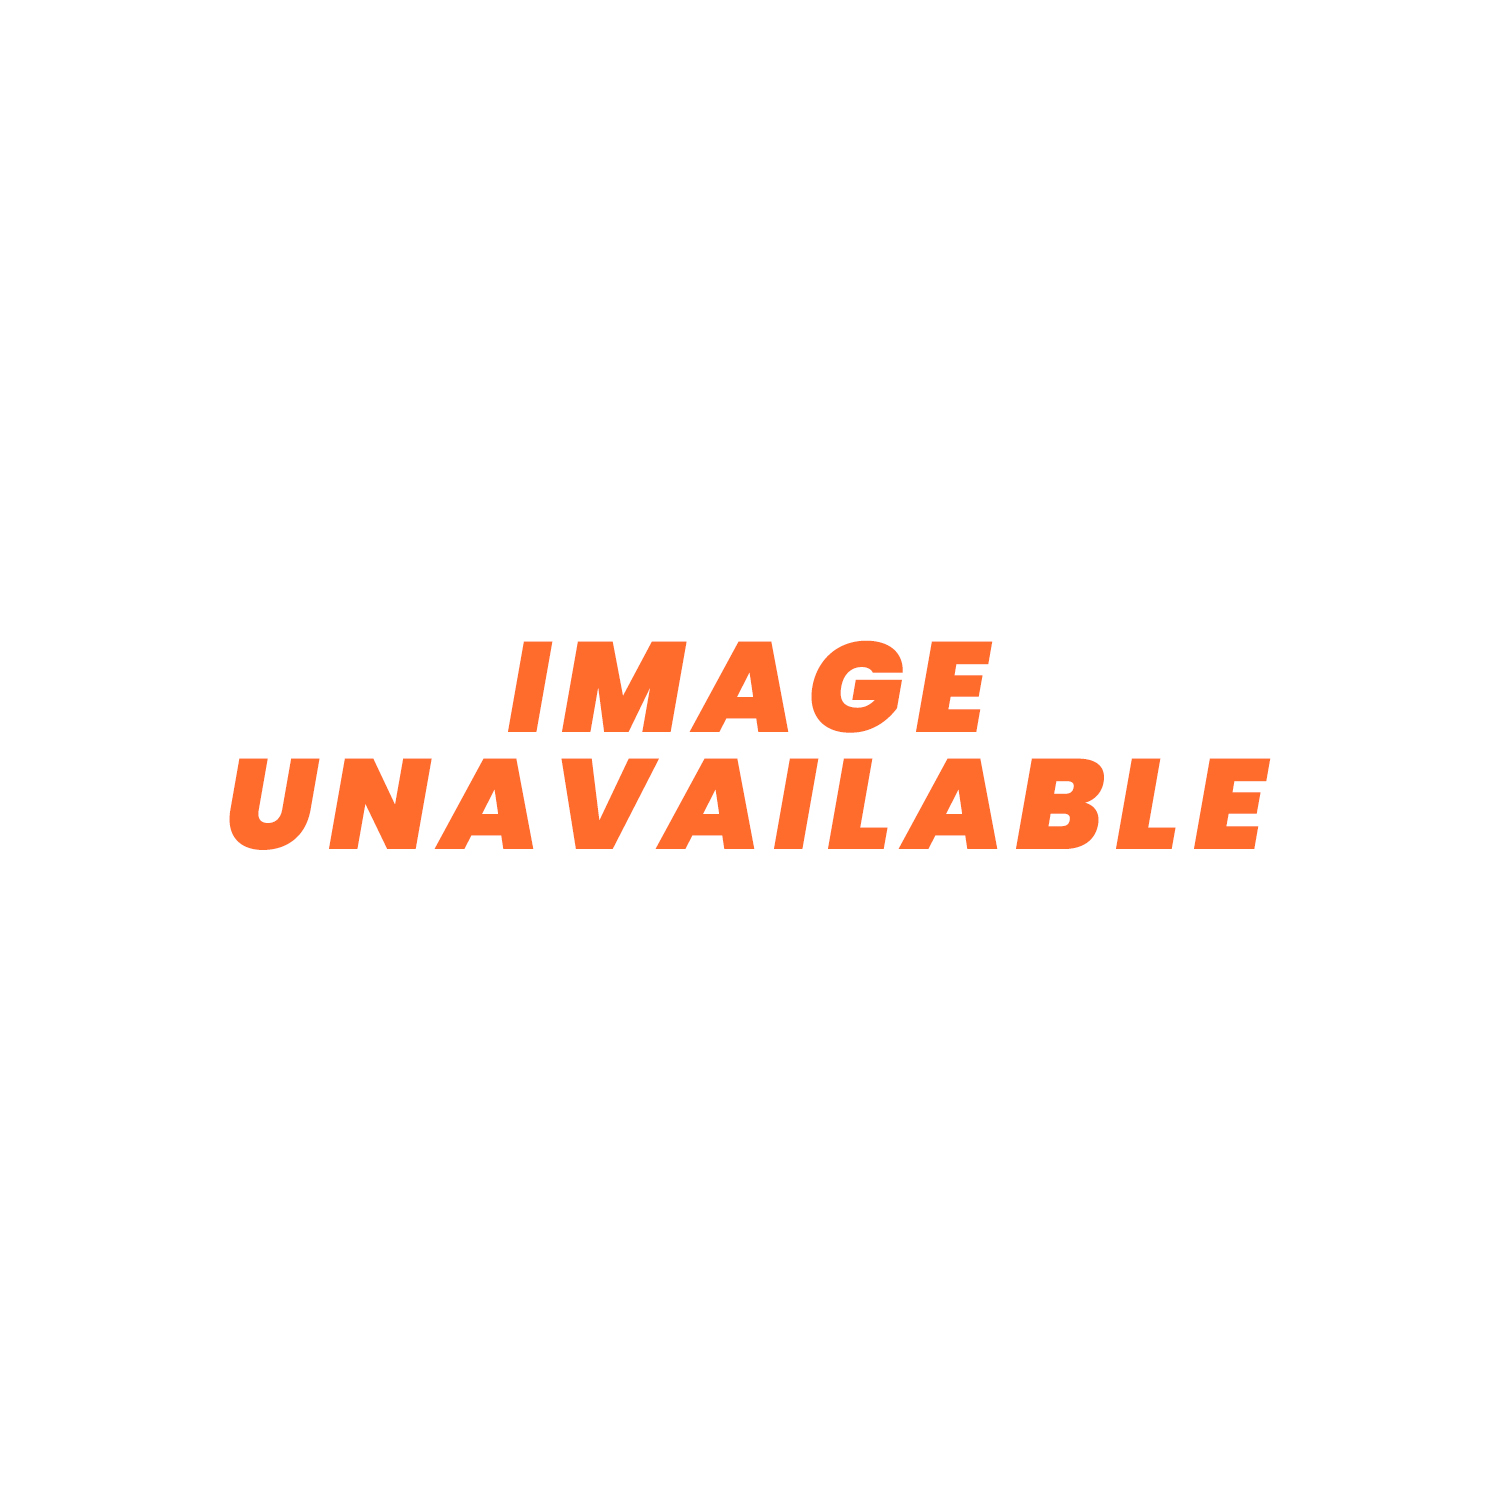 Adhesive Gold Reflective Heat Barrier Sheet 12 x 50""